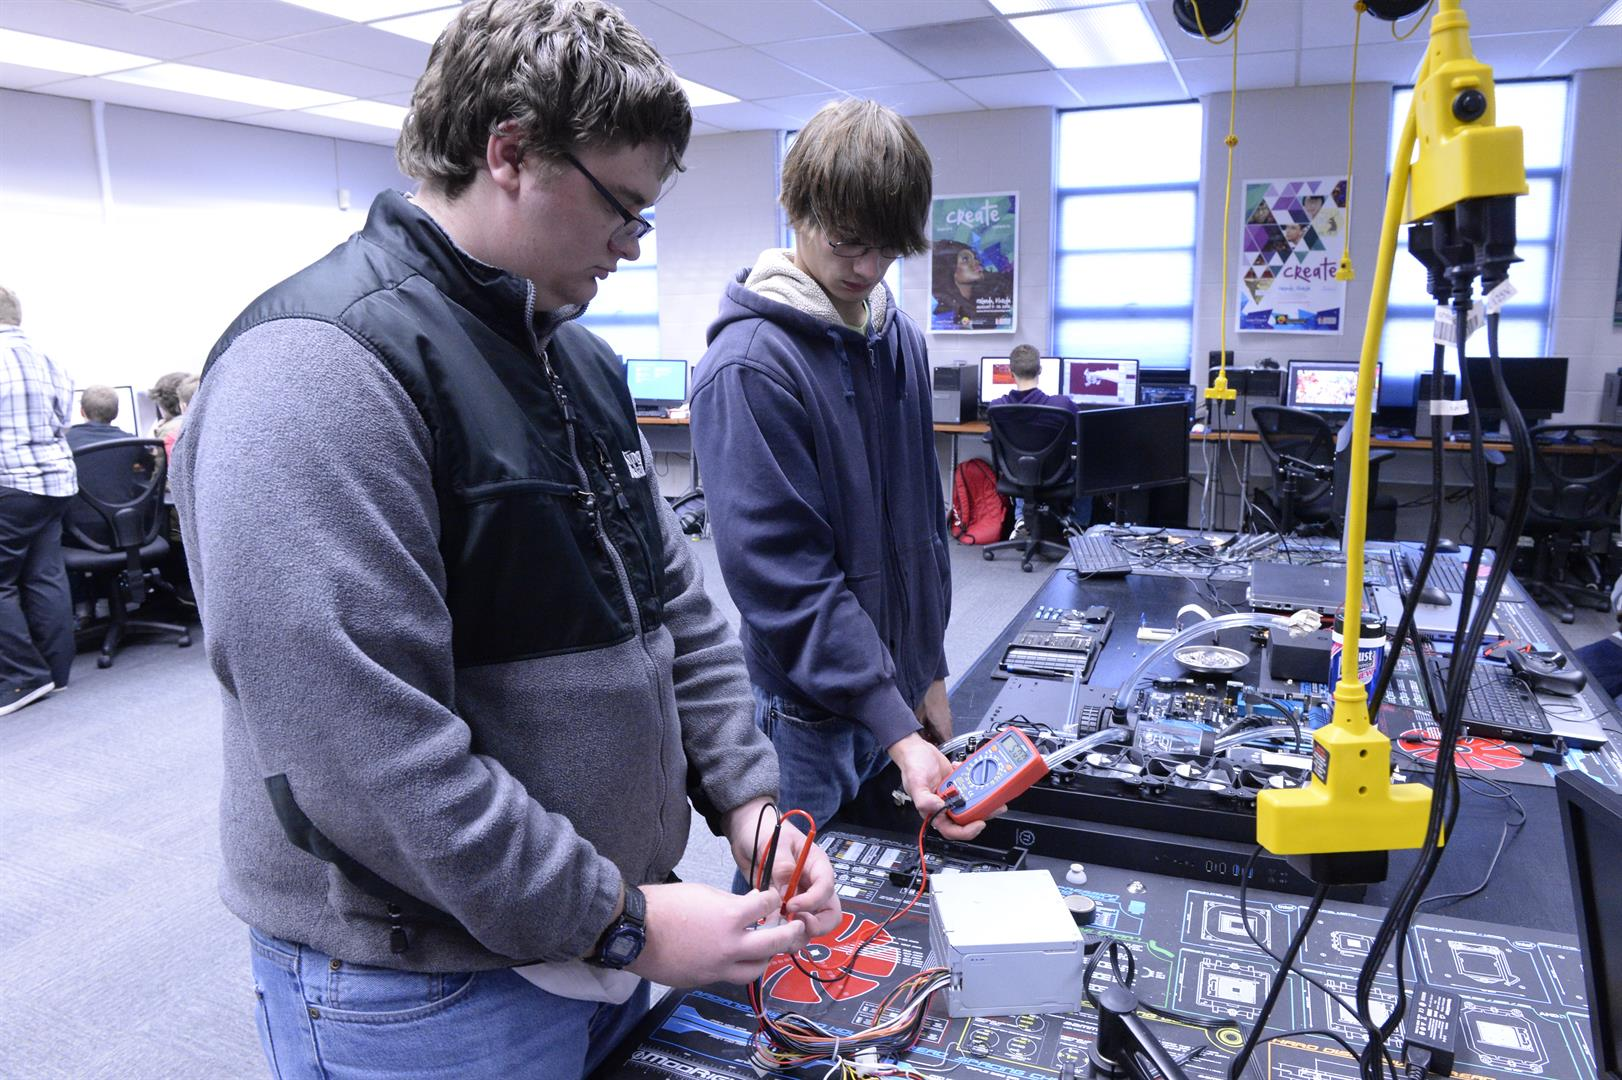 Two students work on a power supply.